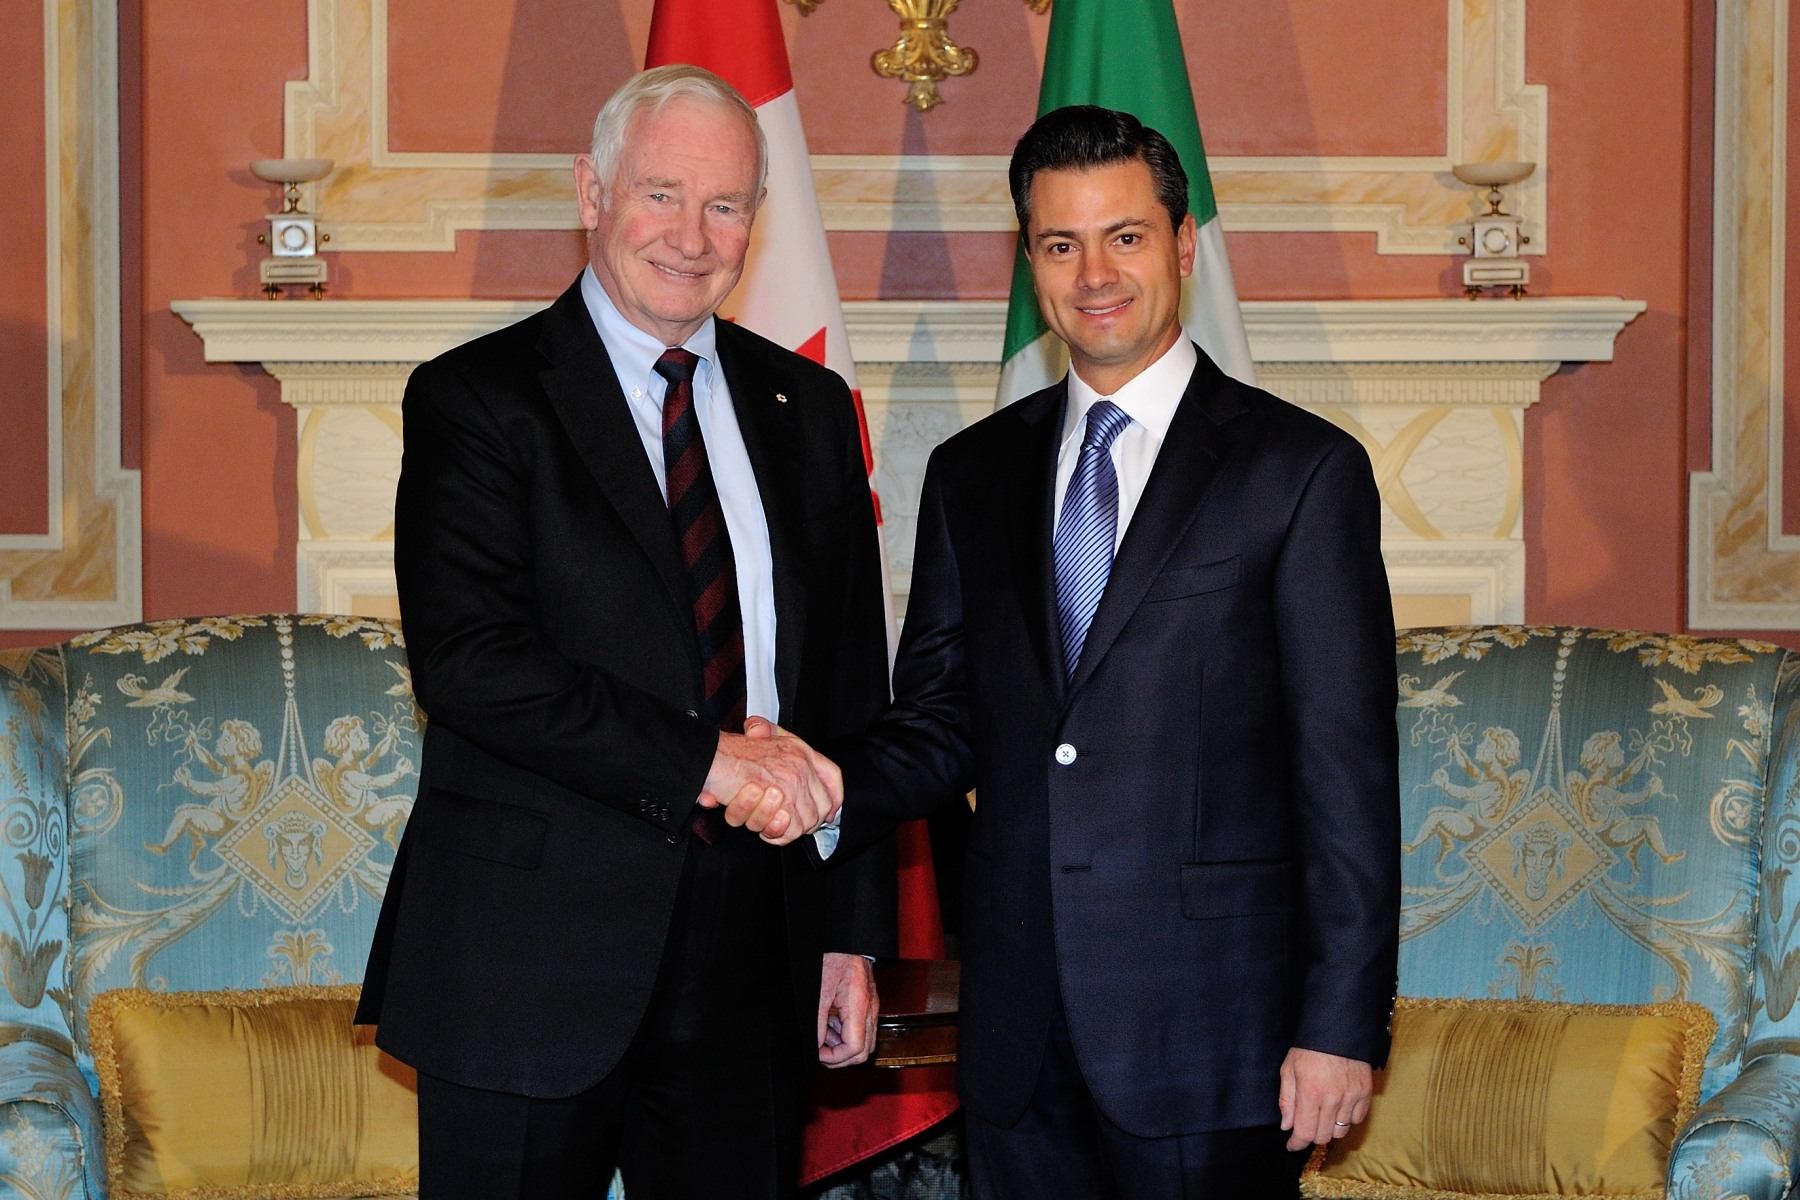 During his visit to the United Mexican States, from November 30 to December 2, the Governor General will represent Canada on the occasion of the inauguration of the new President.